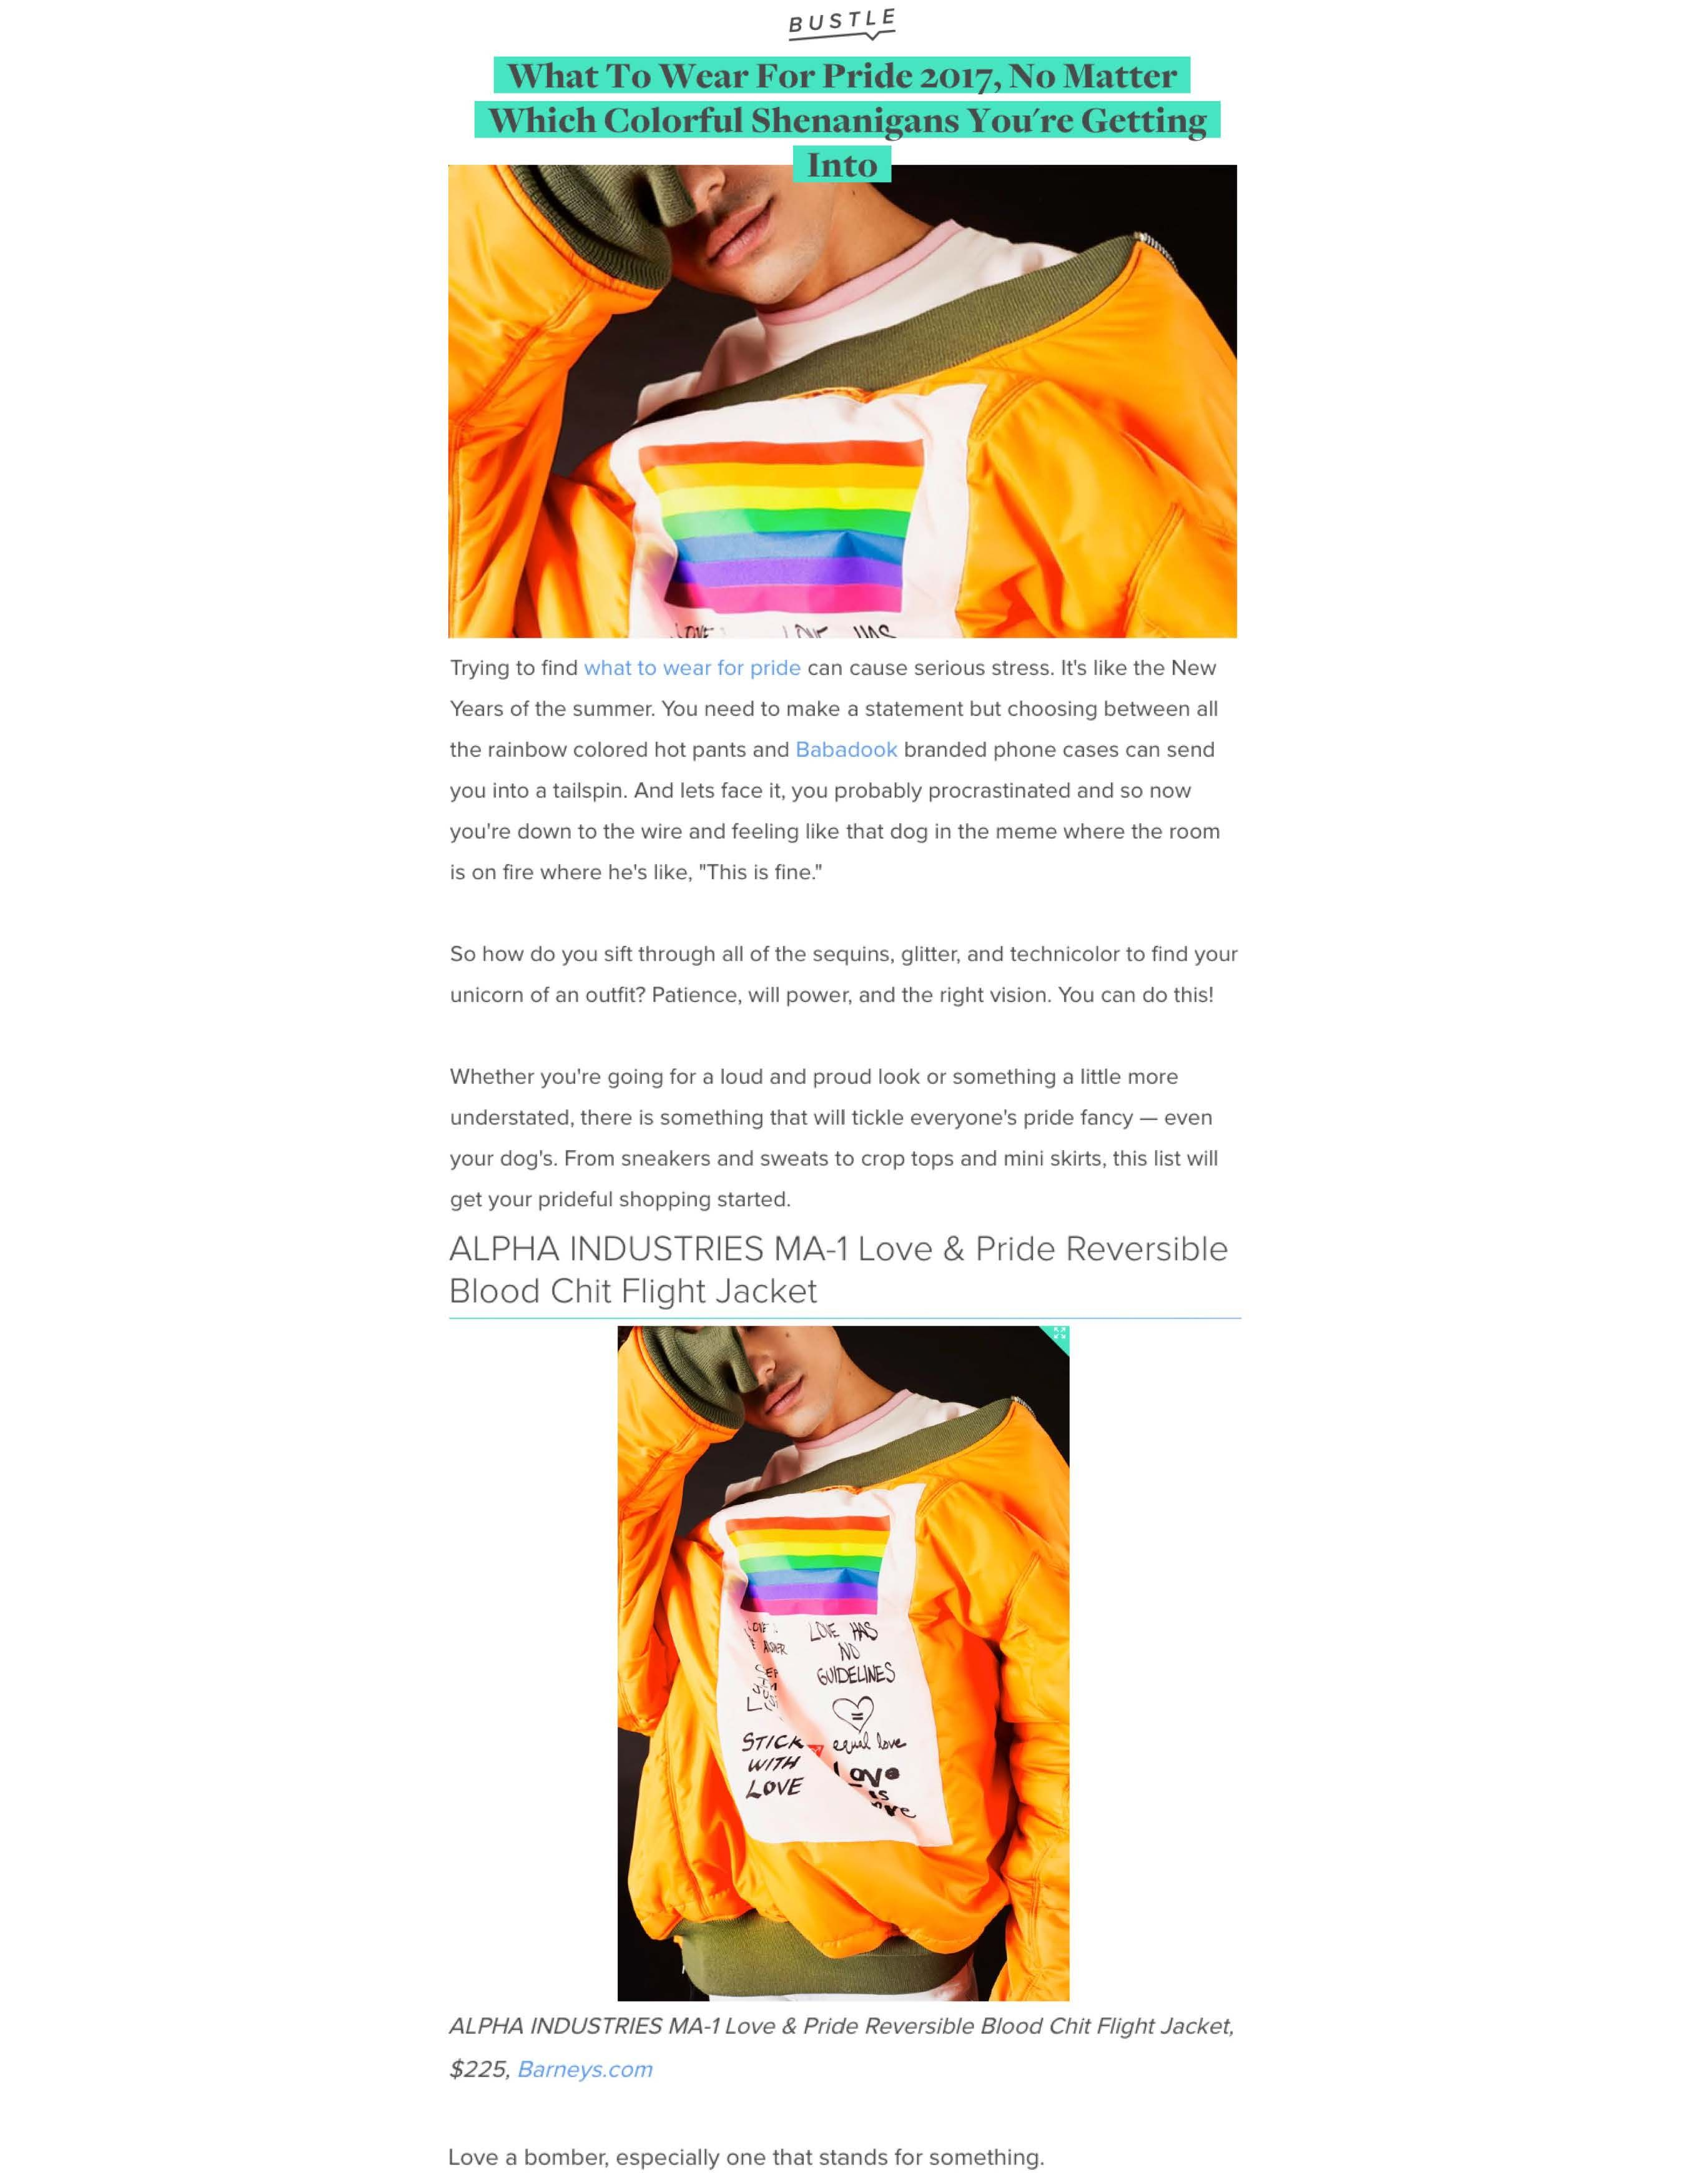 """5544e7dcf0960 Bustle in roundup titled, """"What To Wear For Pride 2017, No Matter Which  Colorful Shenanigans You're Getting Into."""" The roundup suggests items to  wear for ..."""